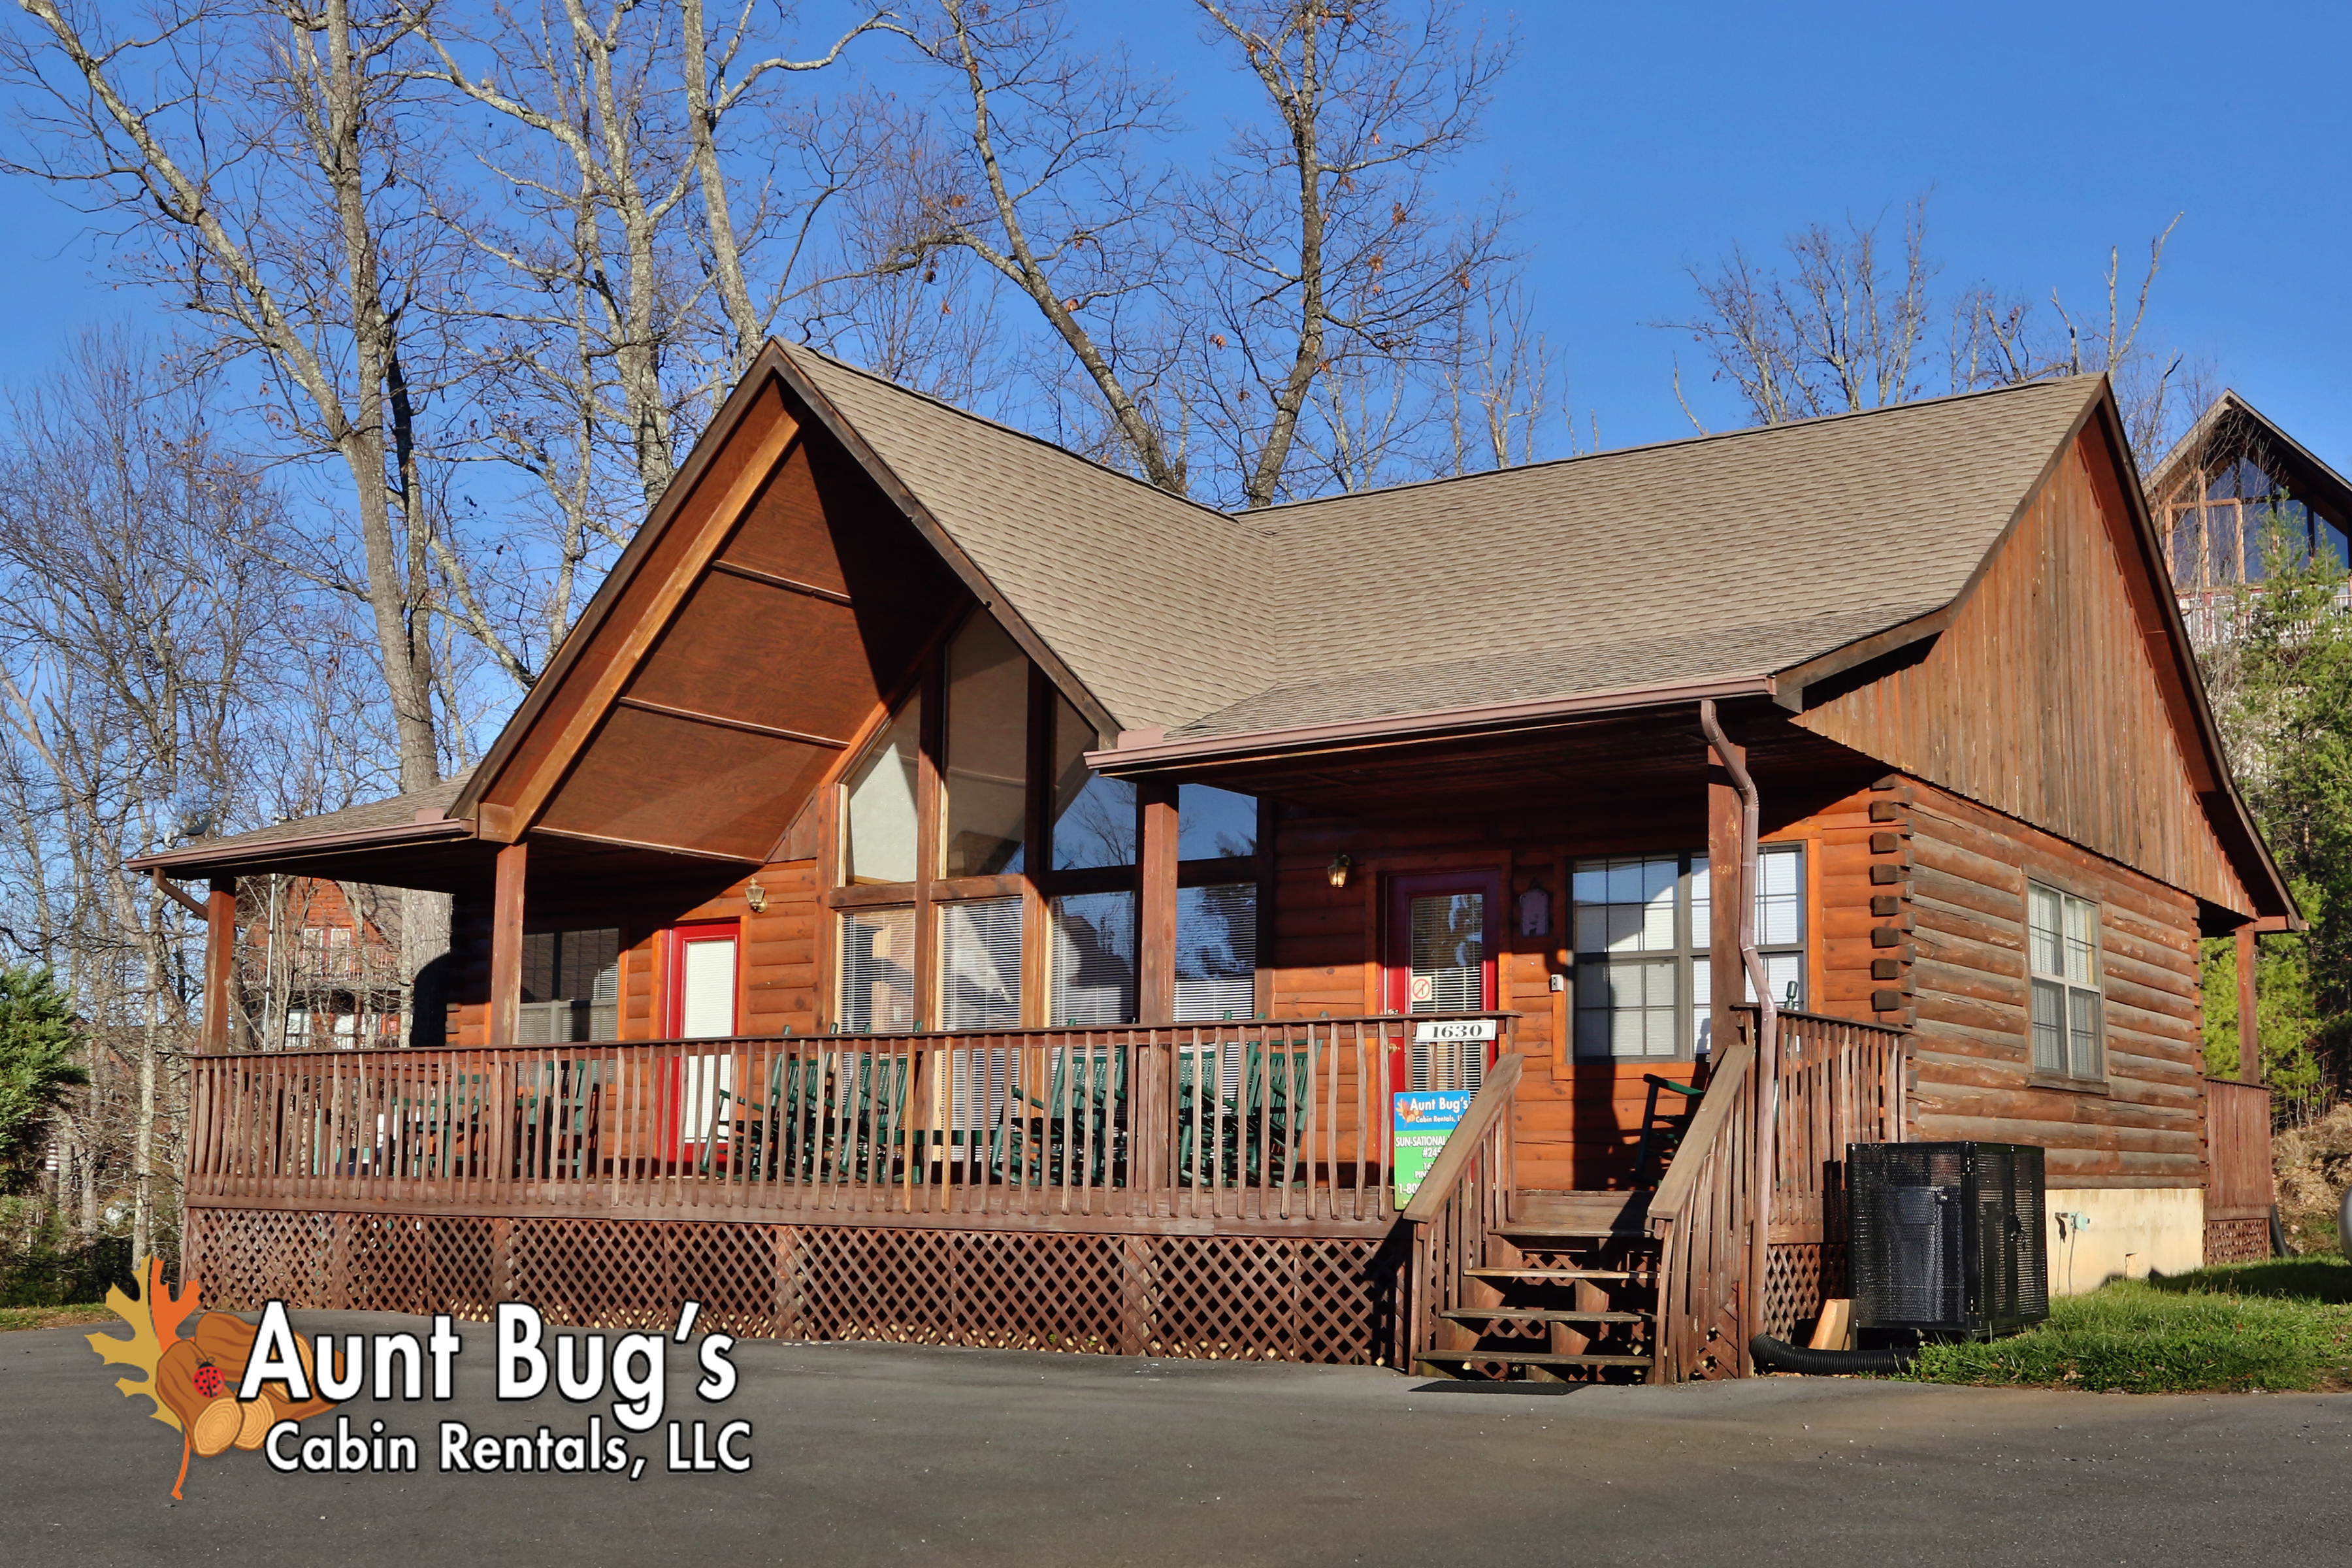 rentals st rental trip cabins lodging canoe regis cabin planning outfitters